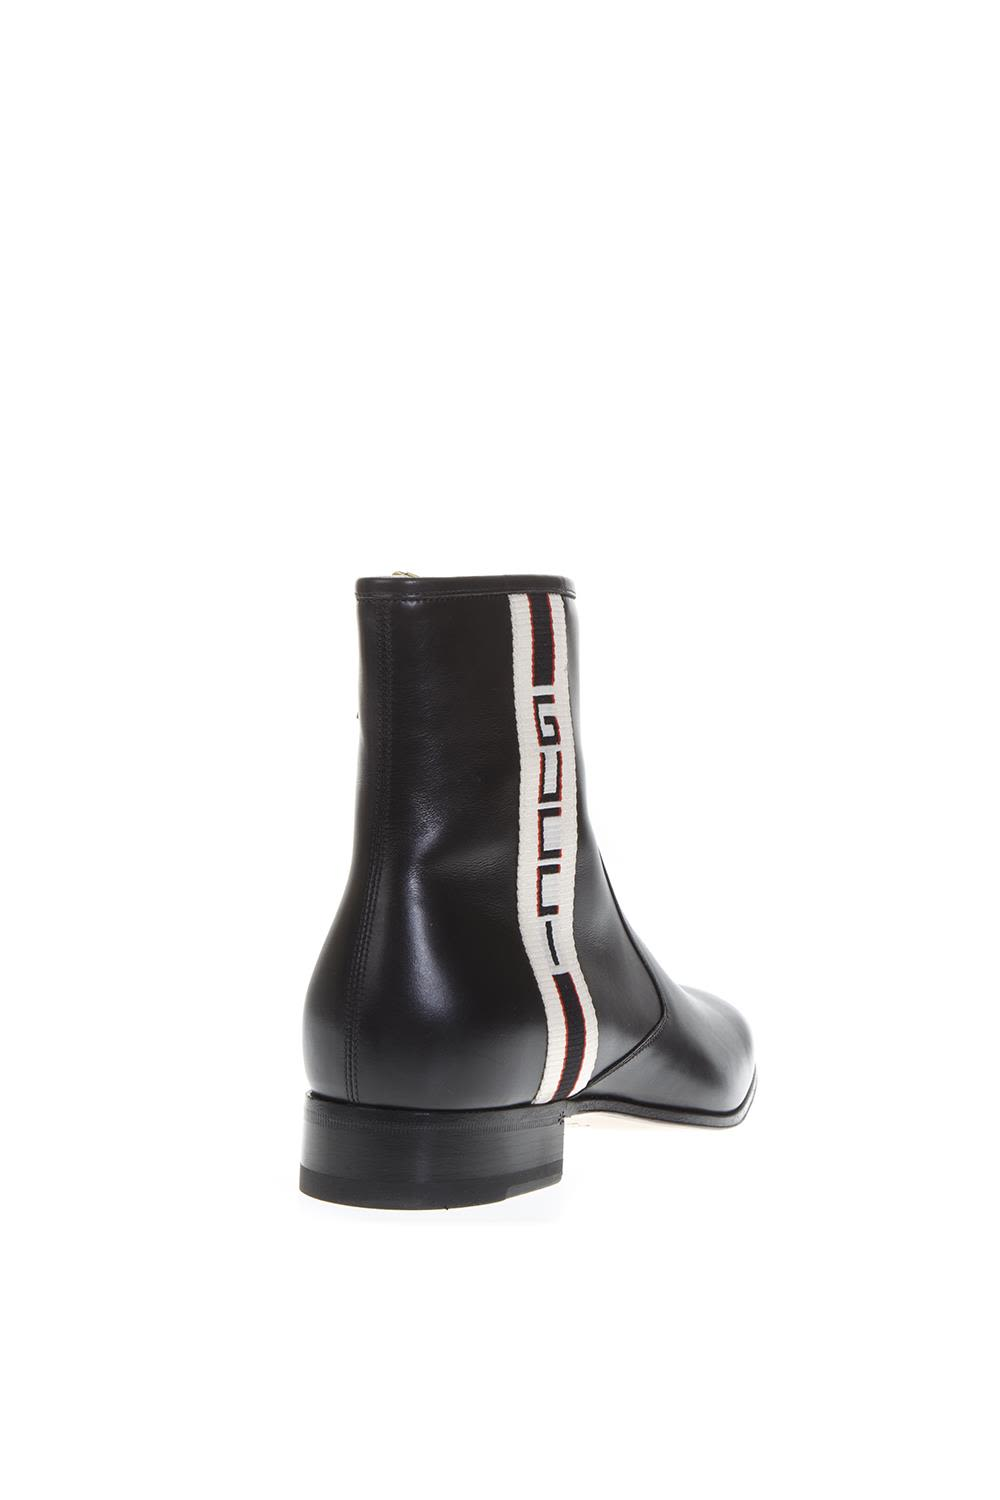 e454616cc520 ... Gucci Gucci Logo Stripe Black Leather Boots - Black ...